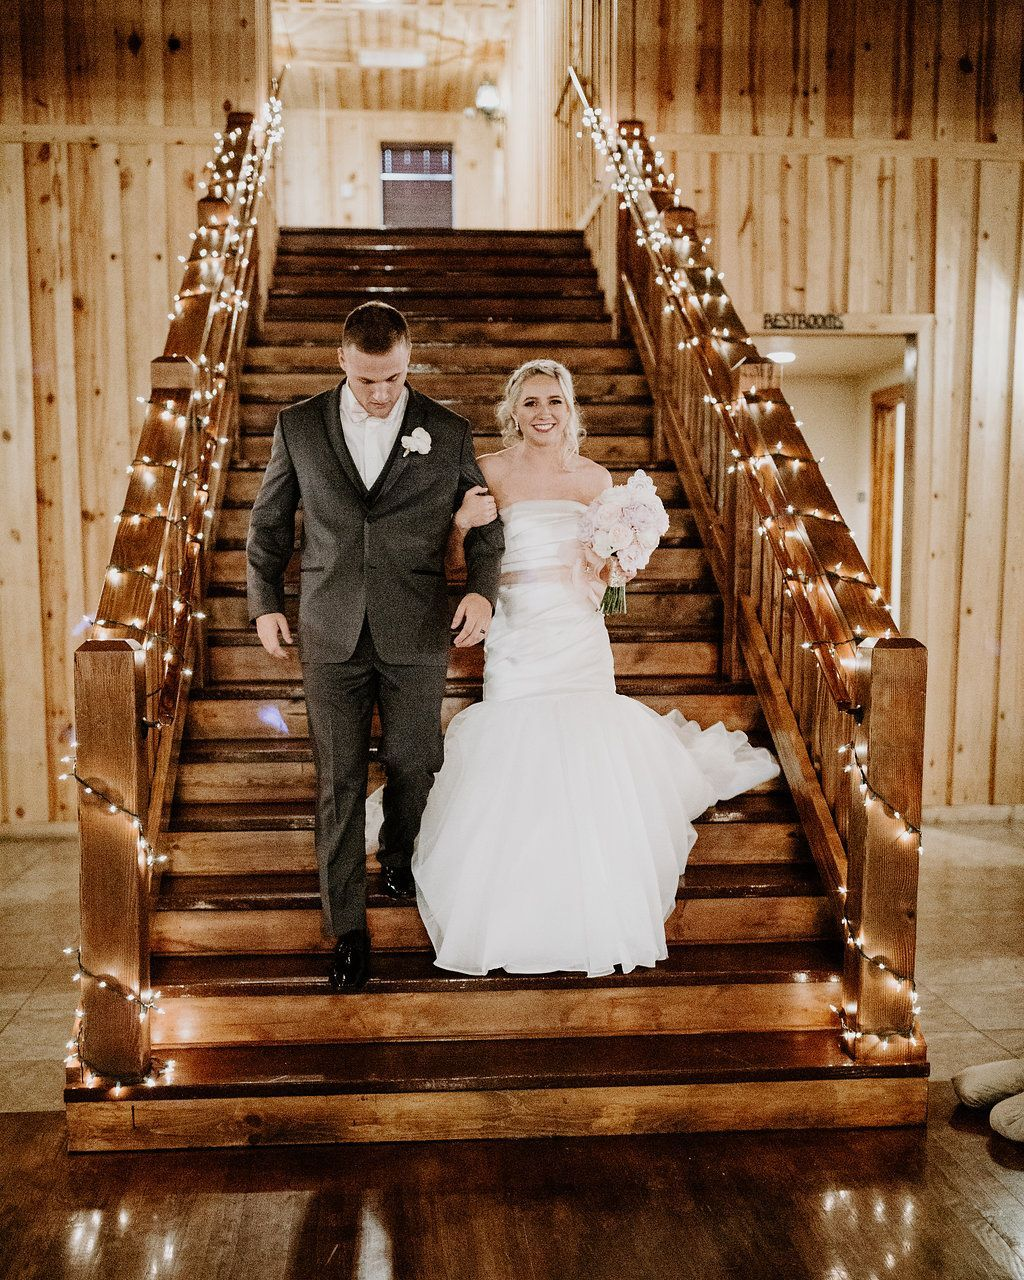 Wedding Staircase With Christmas Lights On The Railings Wedding Staircase Decor Ideas Wedding City Wedding Venues Oklahoma Wedding Venues Wedding Stairs